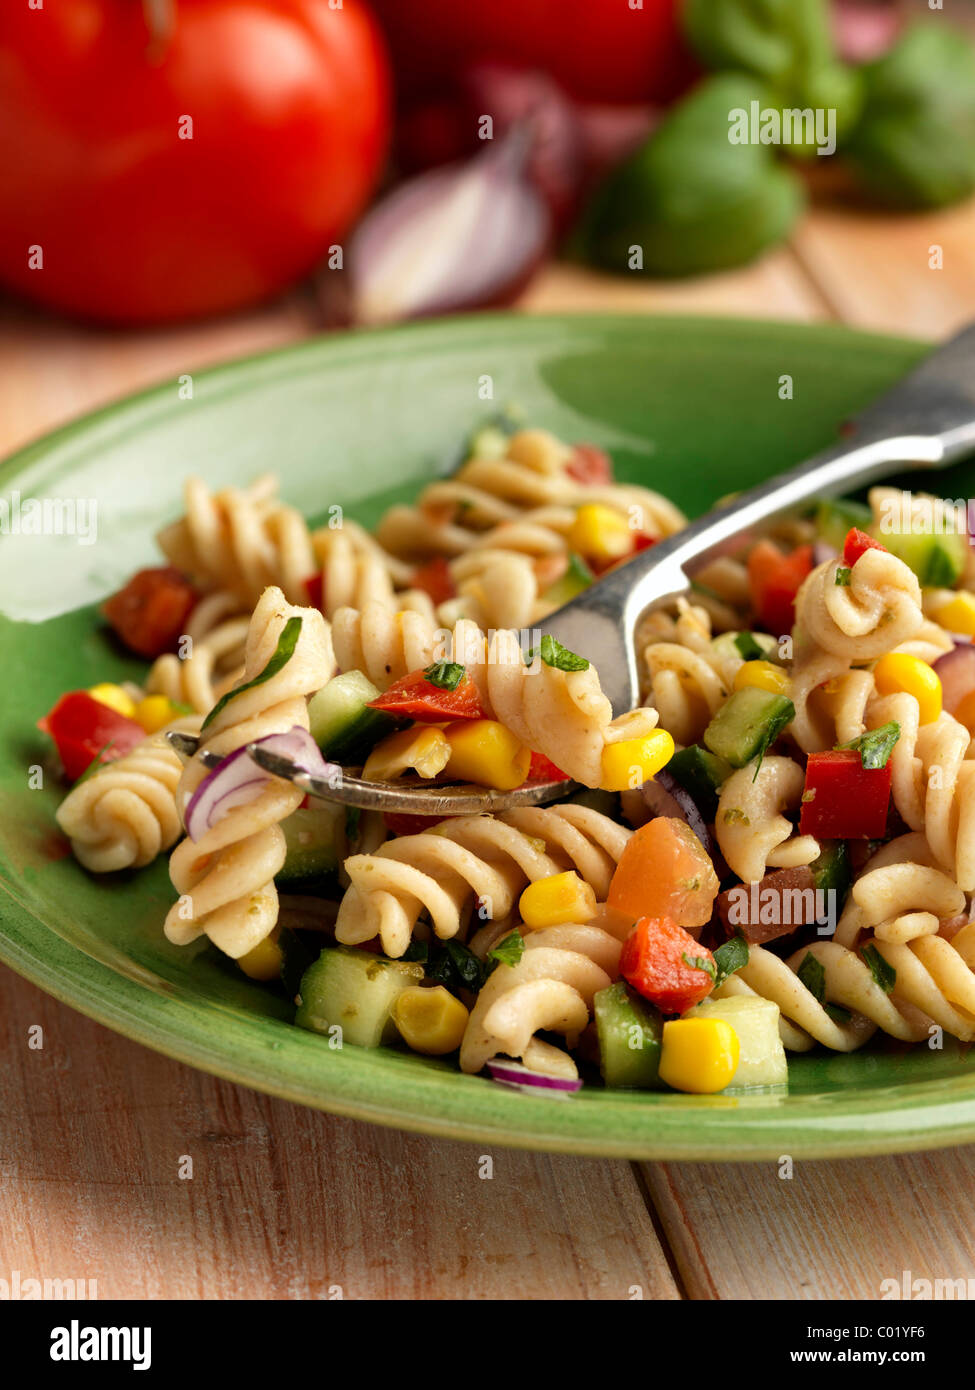 Individual portion of vegetarian spelt pasta salad - Stock Image